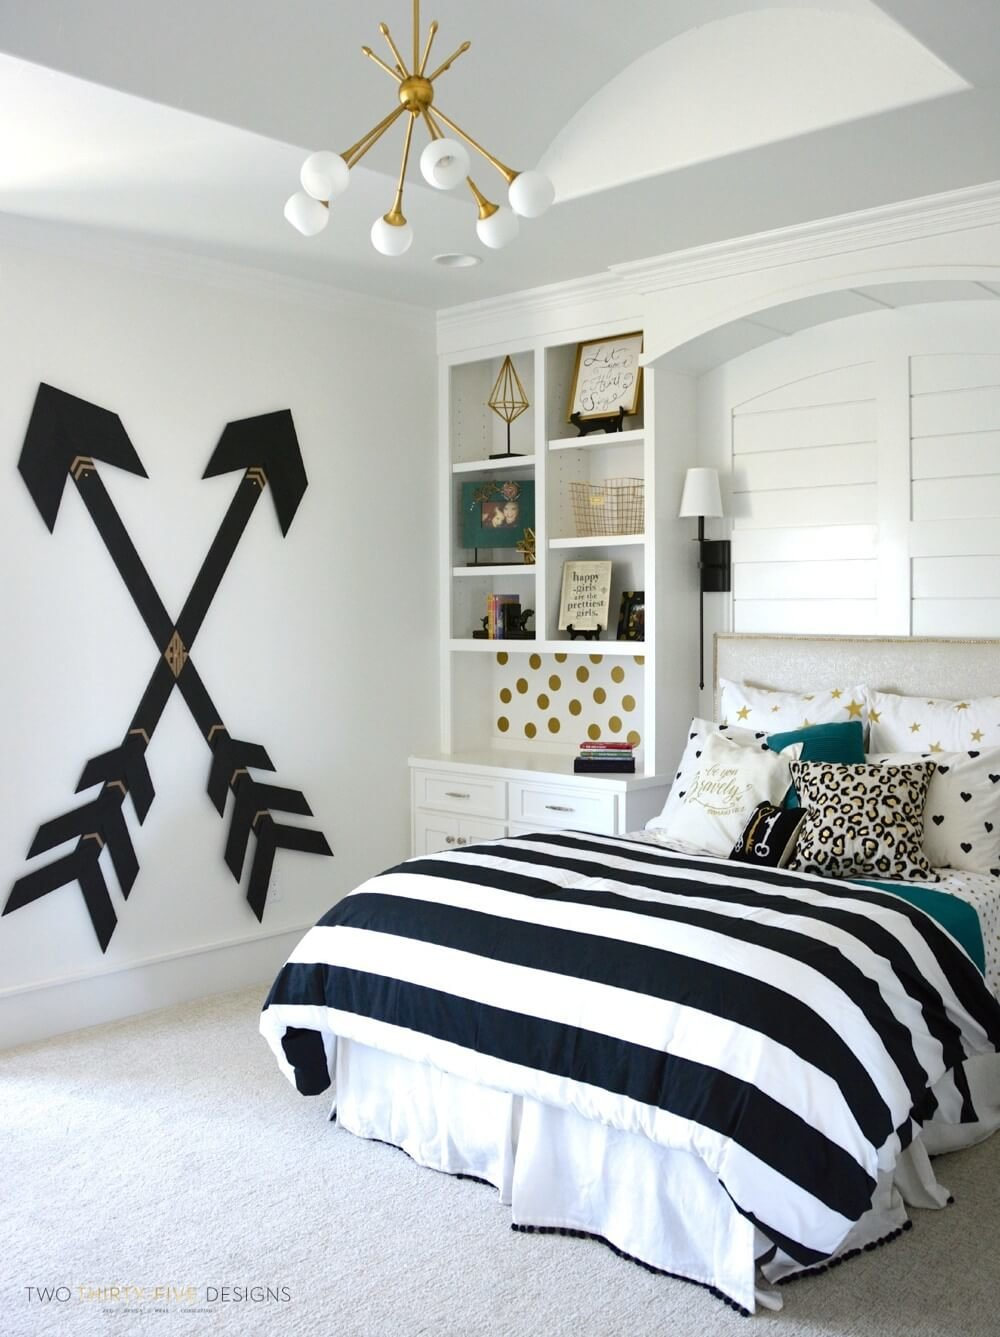 65+ Feminine and Fashionable Teenage Girl Bedroom Ideas That Will Blow Your Mind